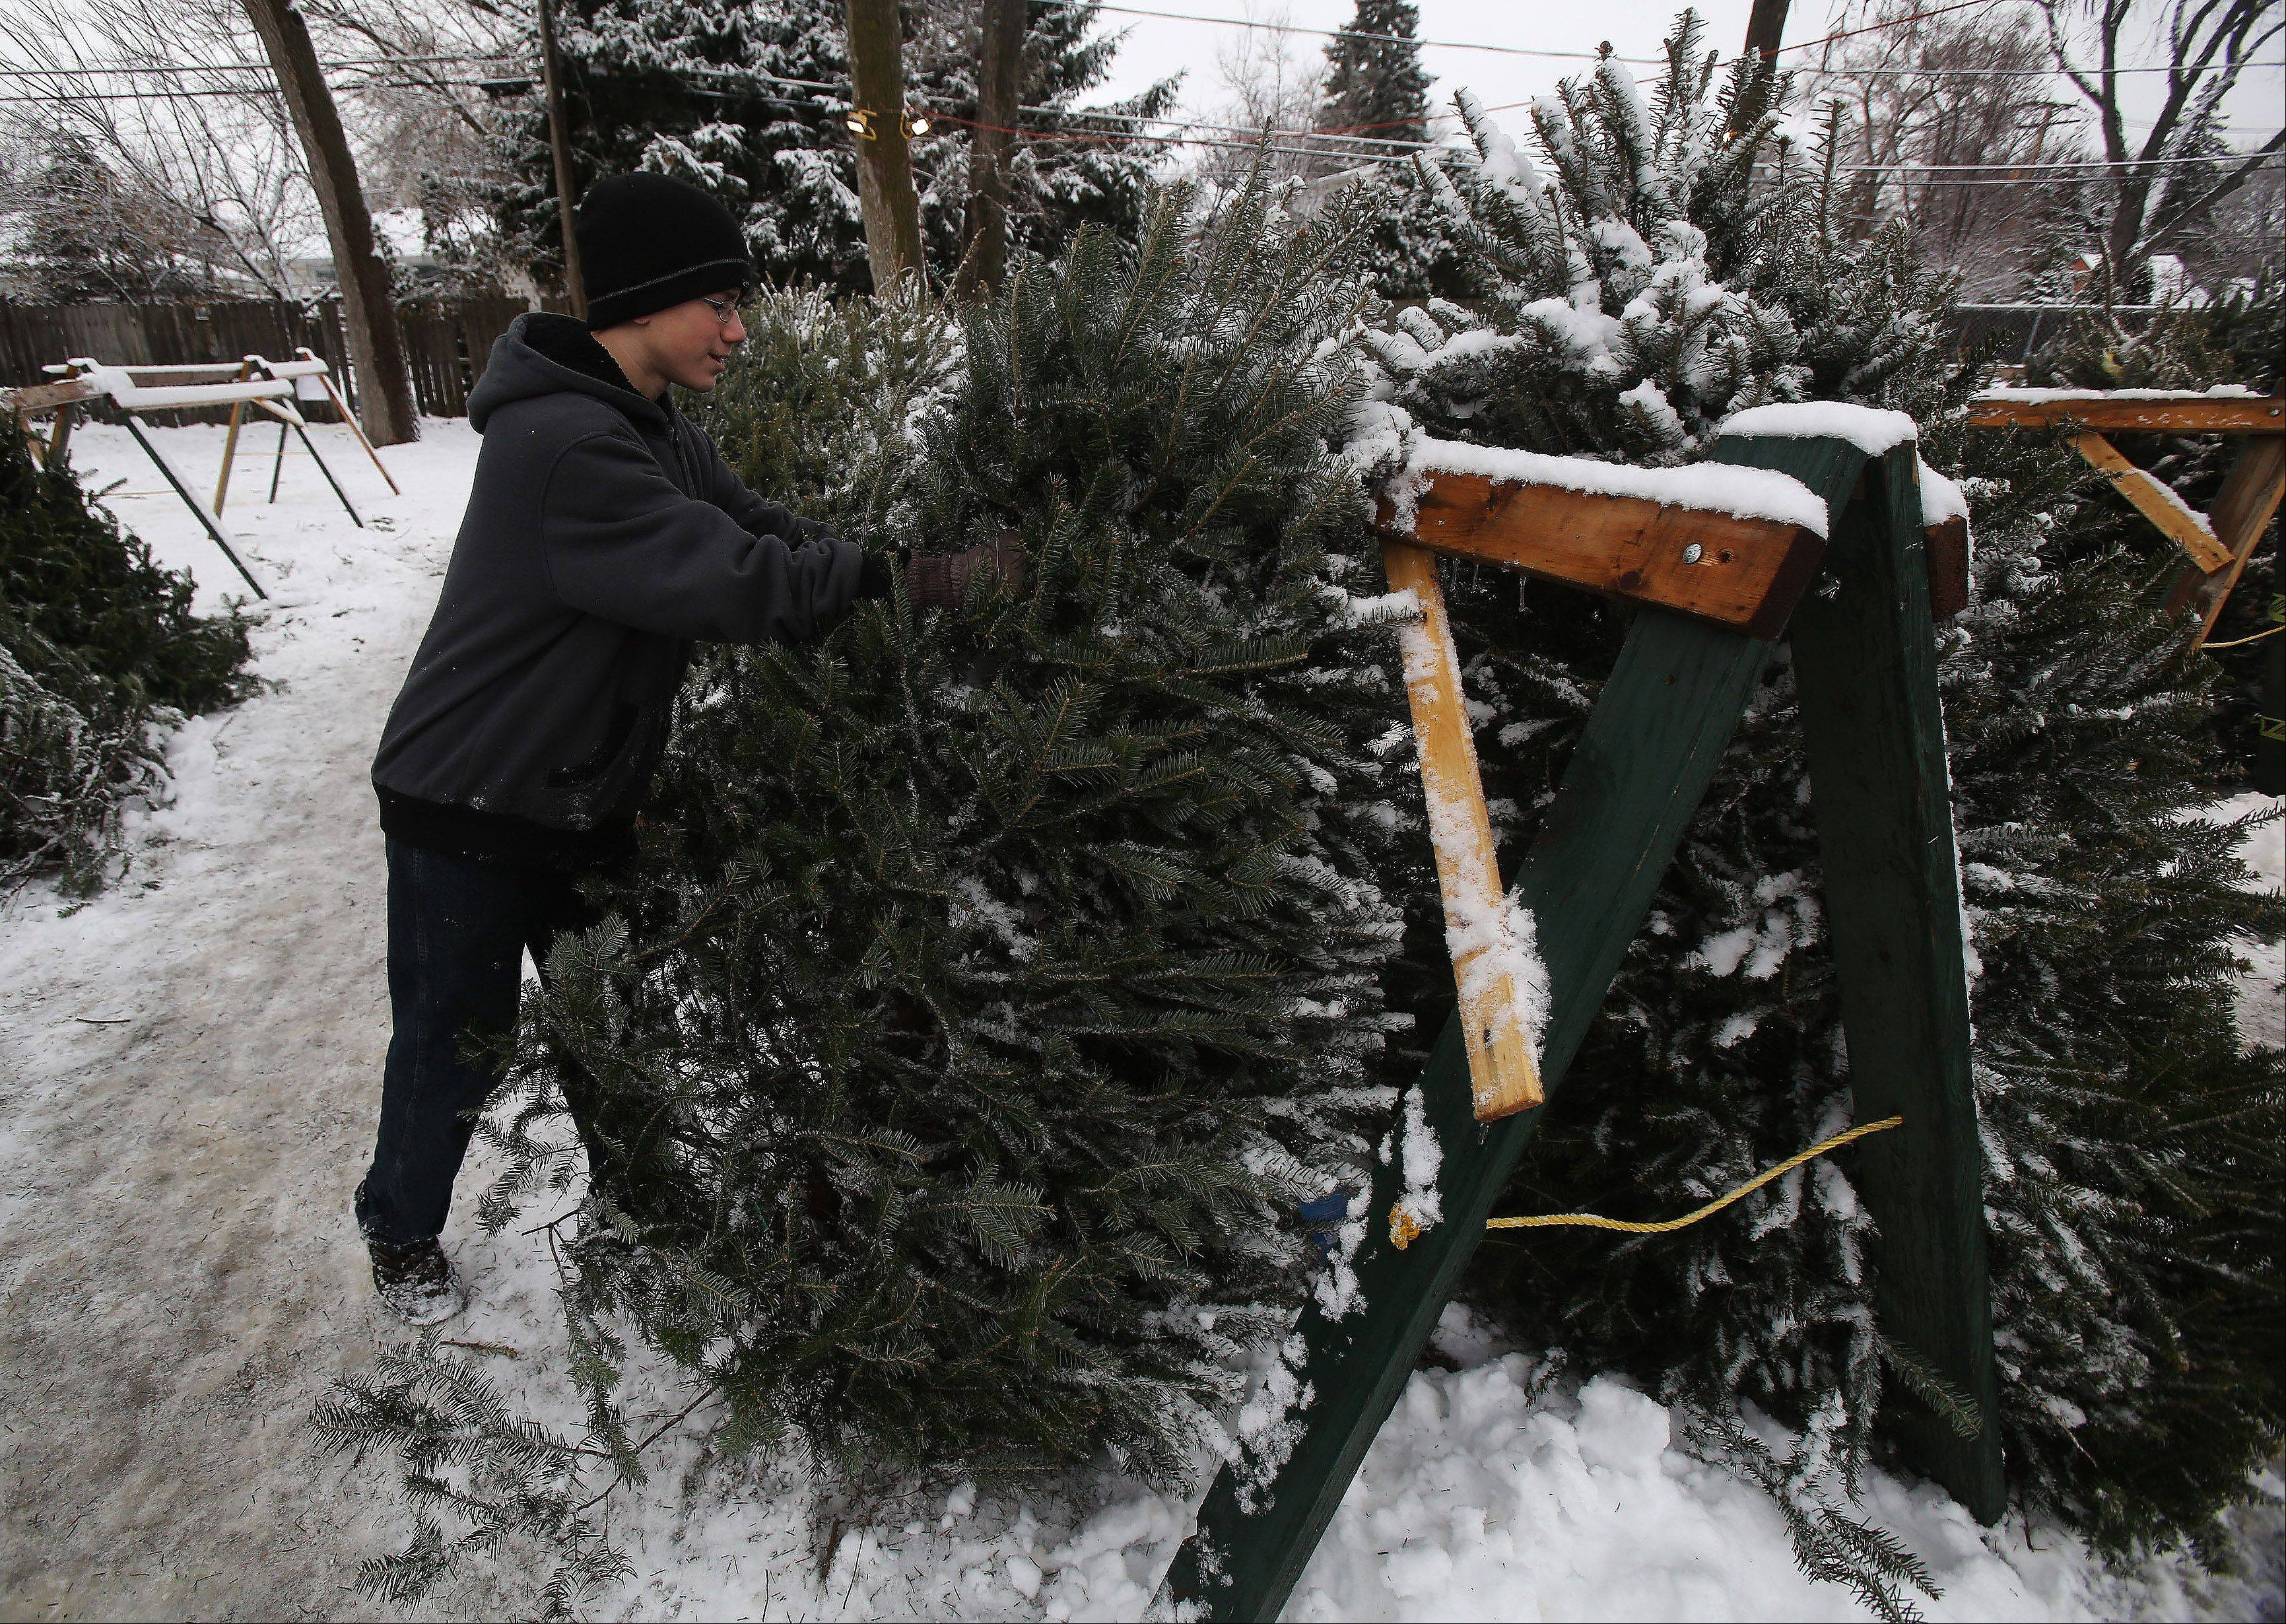 Boy Scout Scott Haseman, 14 of Mundelein shakes the snow off Christmas trees Sunday at St. Andrew Lutheran Church in Mundelein, where his troop was conducting a tree sale. Towns in Lake and McHenry counties where heaviest hit by snow early Sunday.